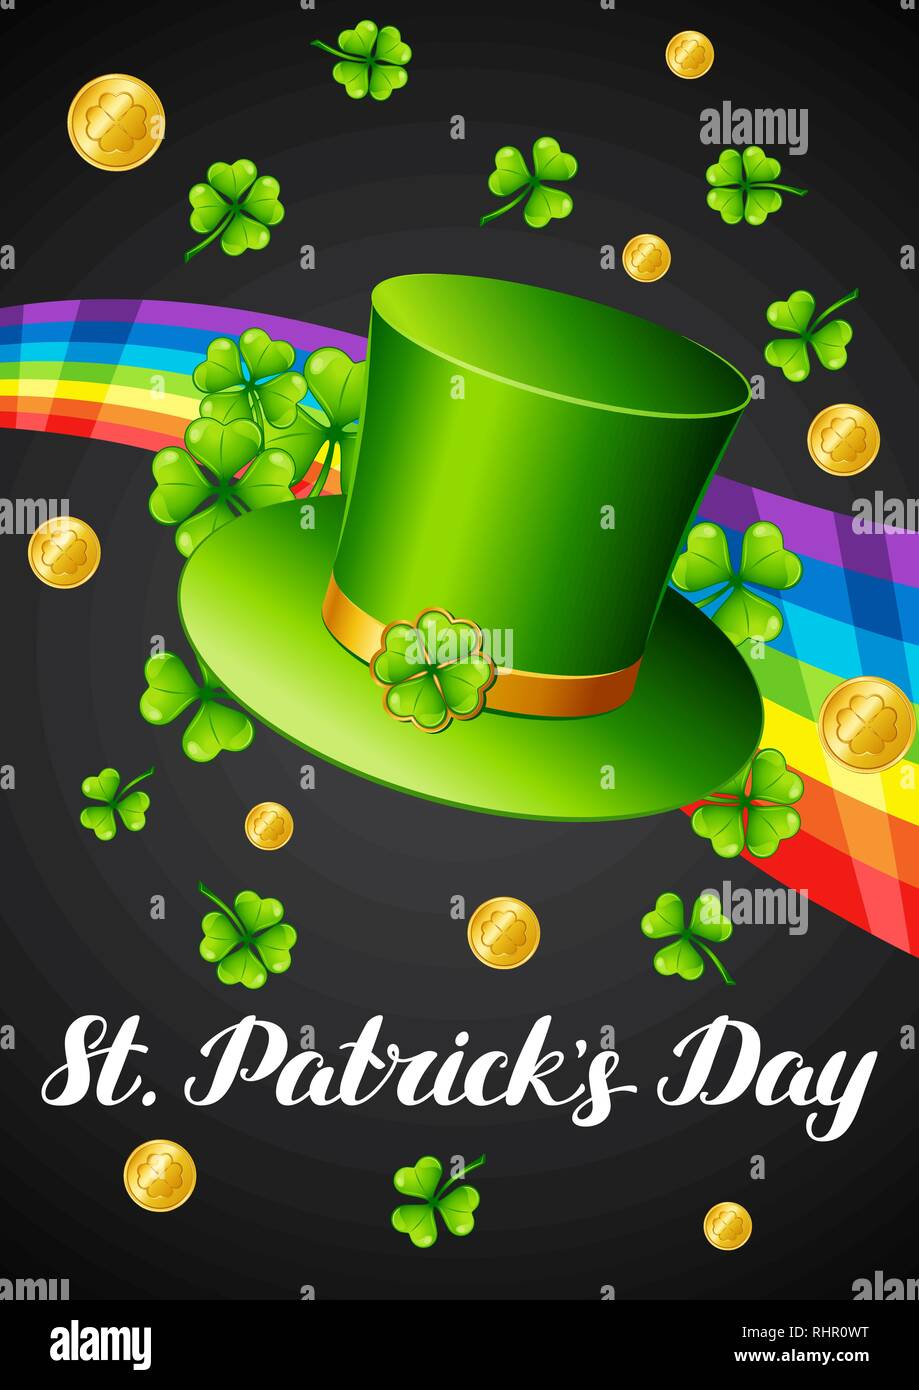 Saint Patricks Day greeting card. - Stock Vector